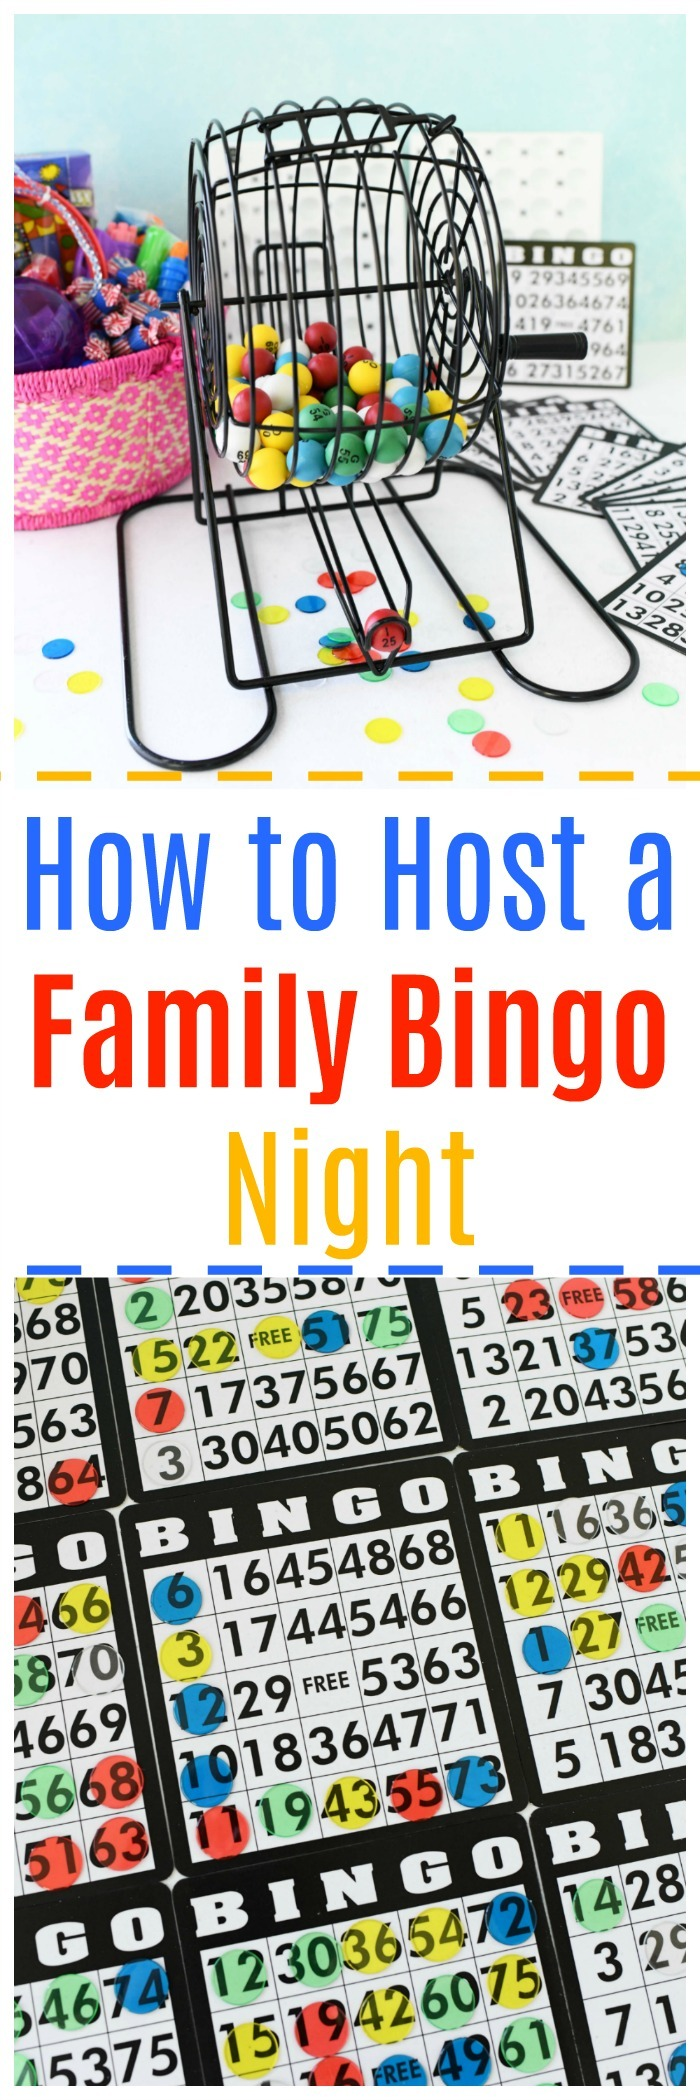 How to Host a Family Bingo Night